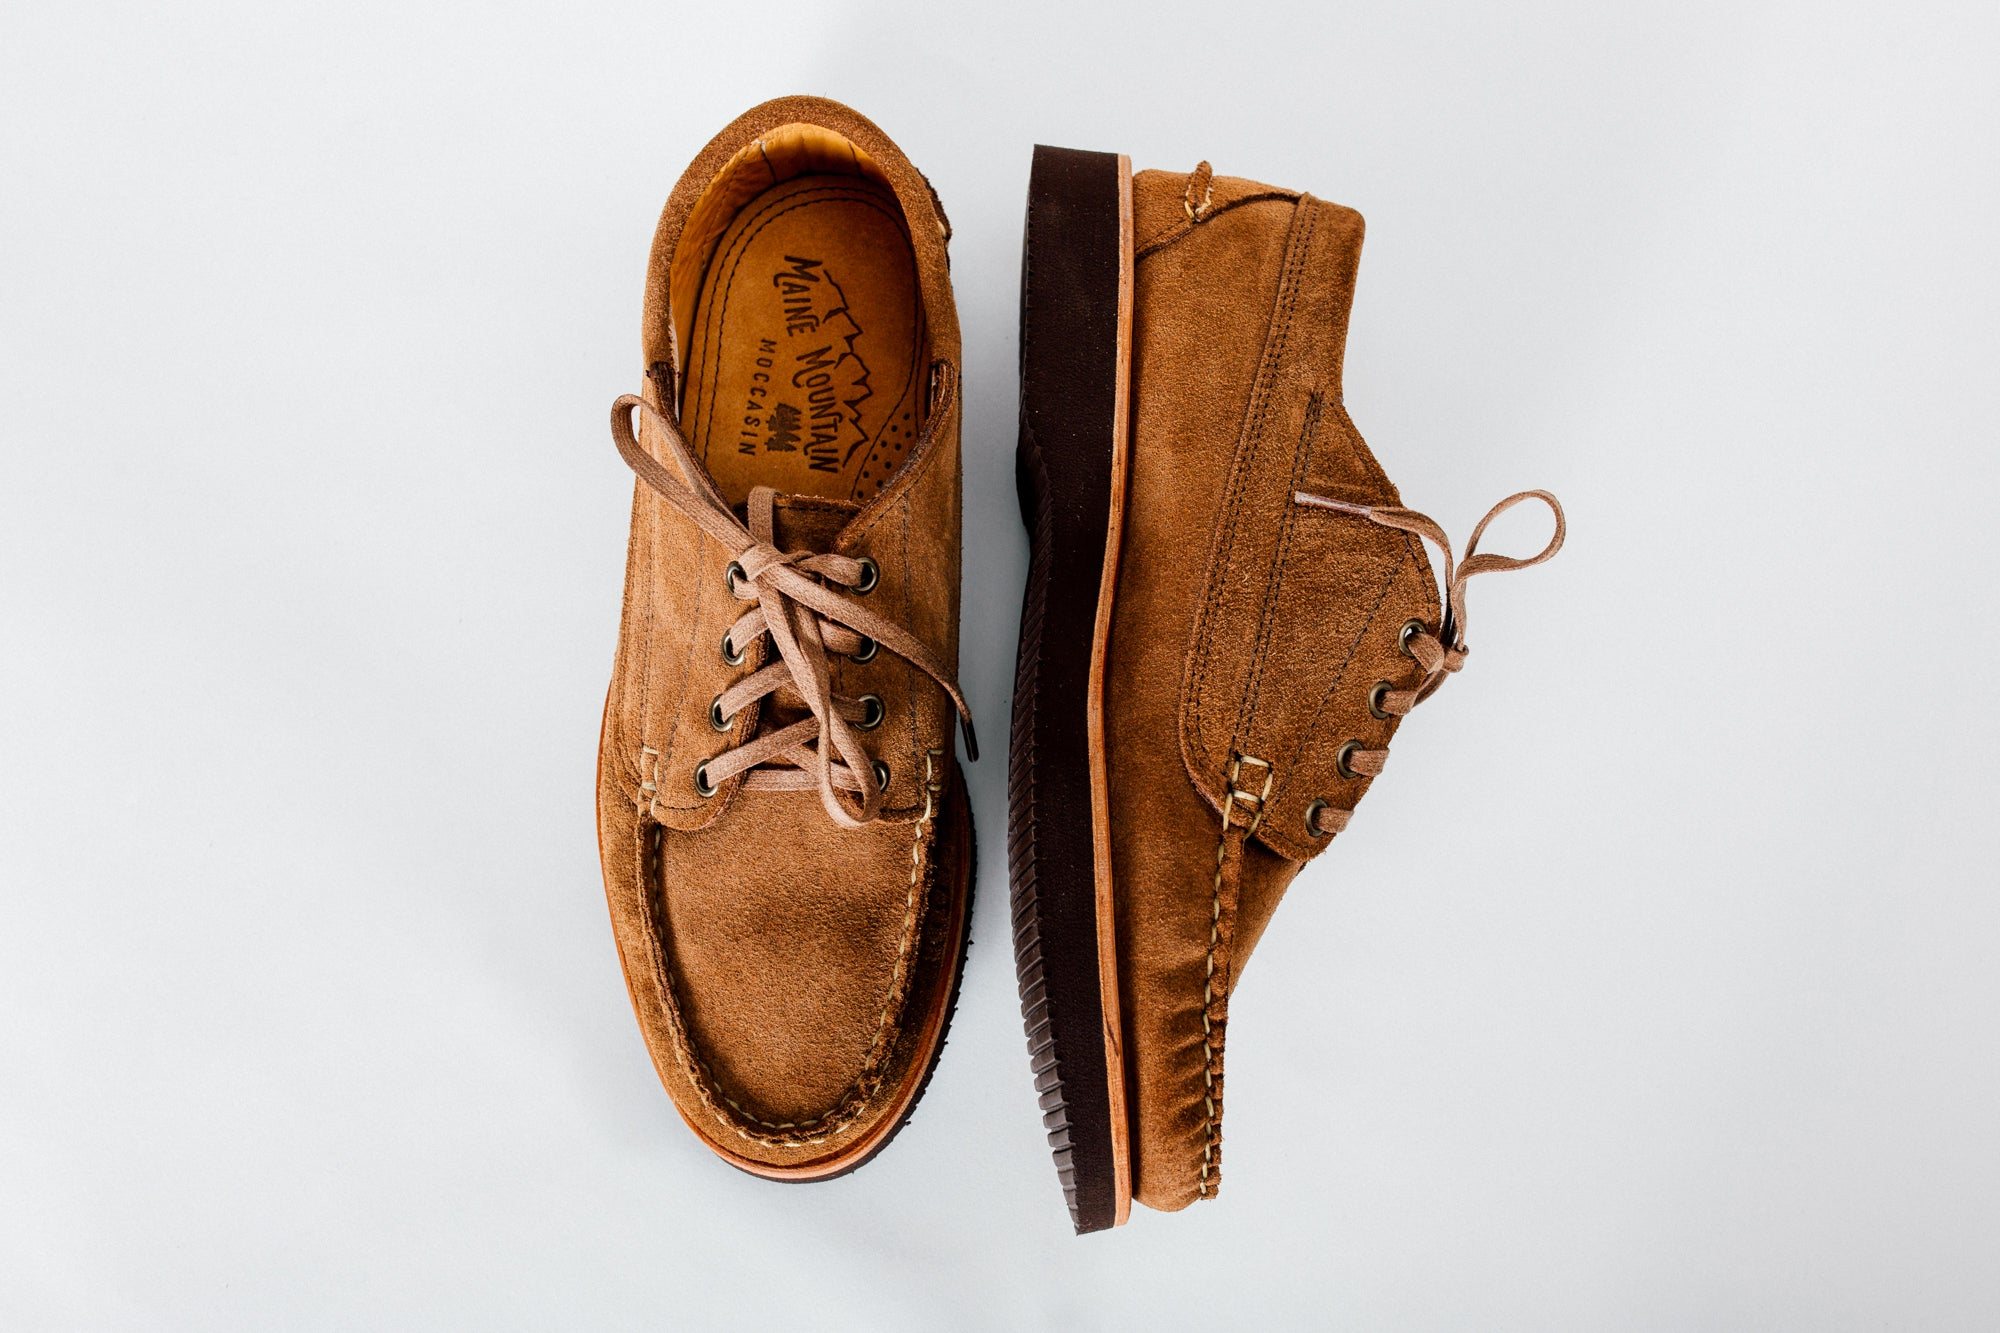 a5e9698c0cb Maine Mountain Moccasin handsewn shoes made in Maine